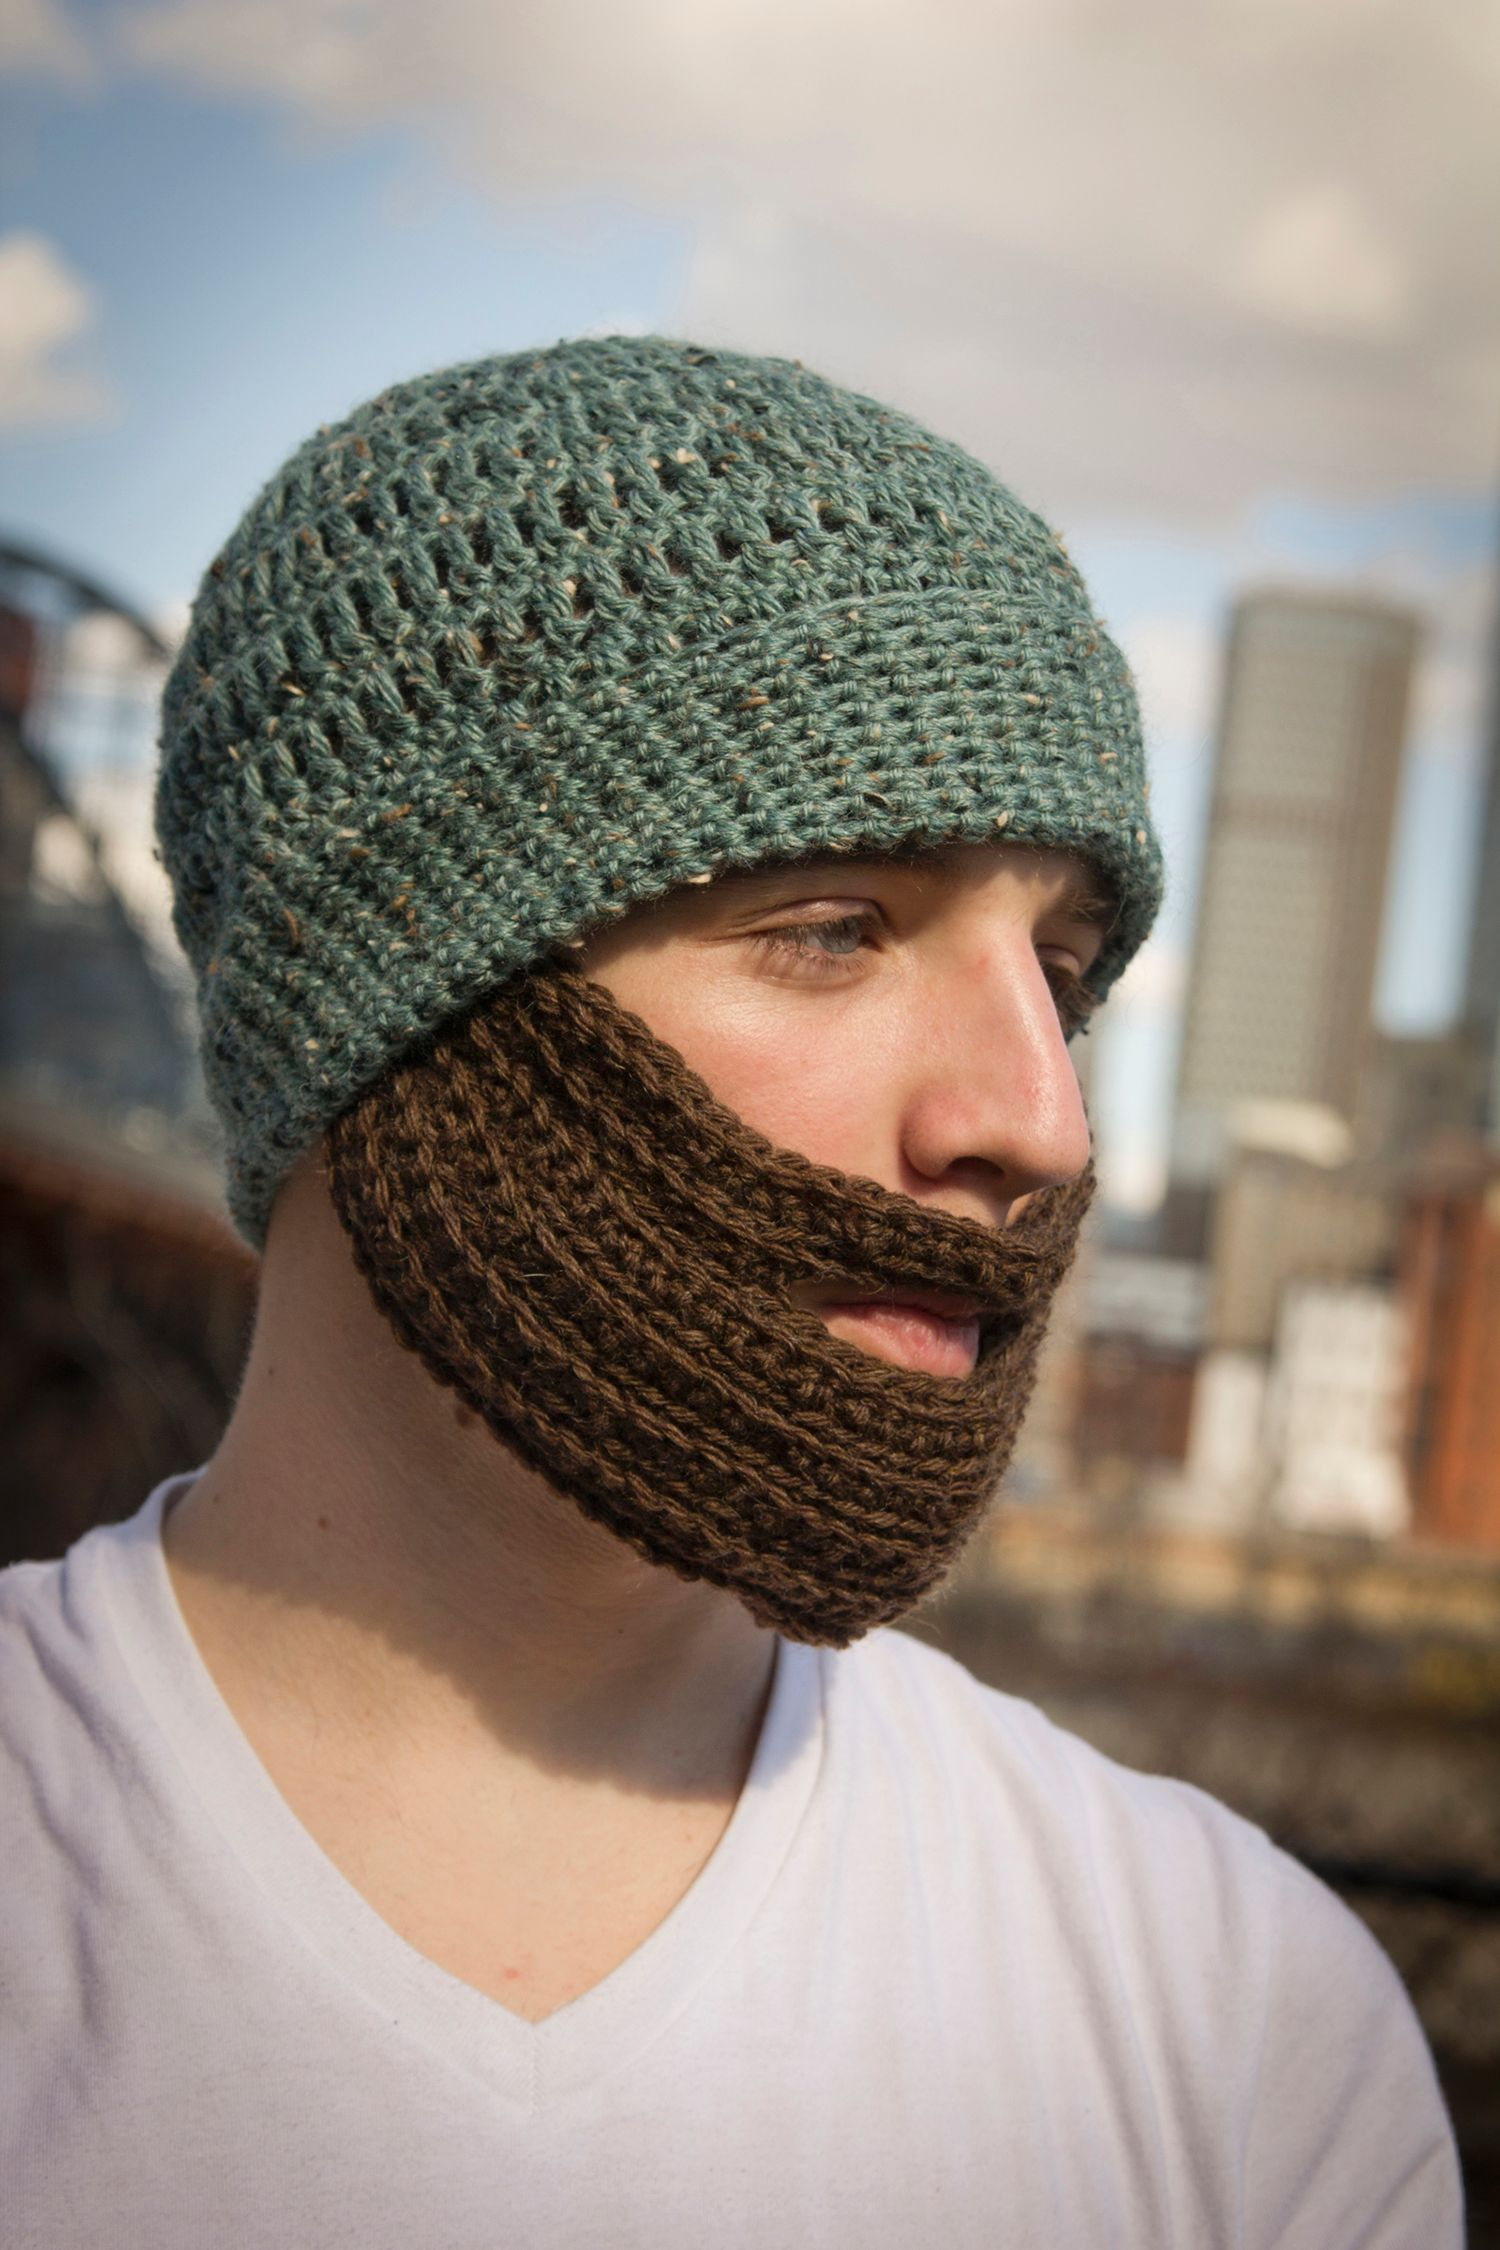 8380d0f8d2b Crochet Bearded Hat - Knitting Patterns and Crochet Patterns from  KnitPicks.com